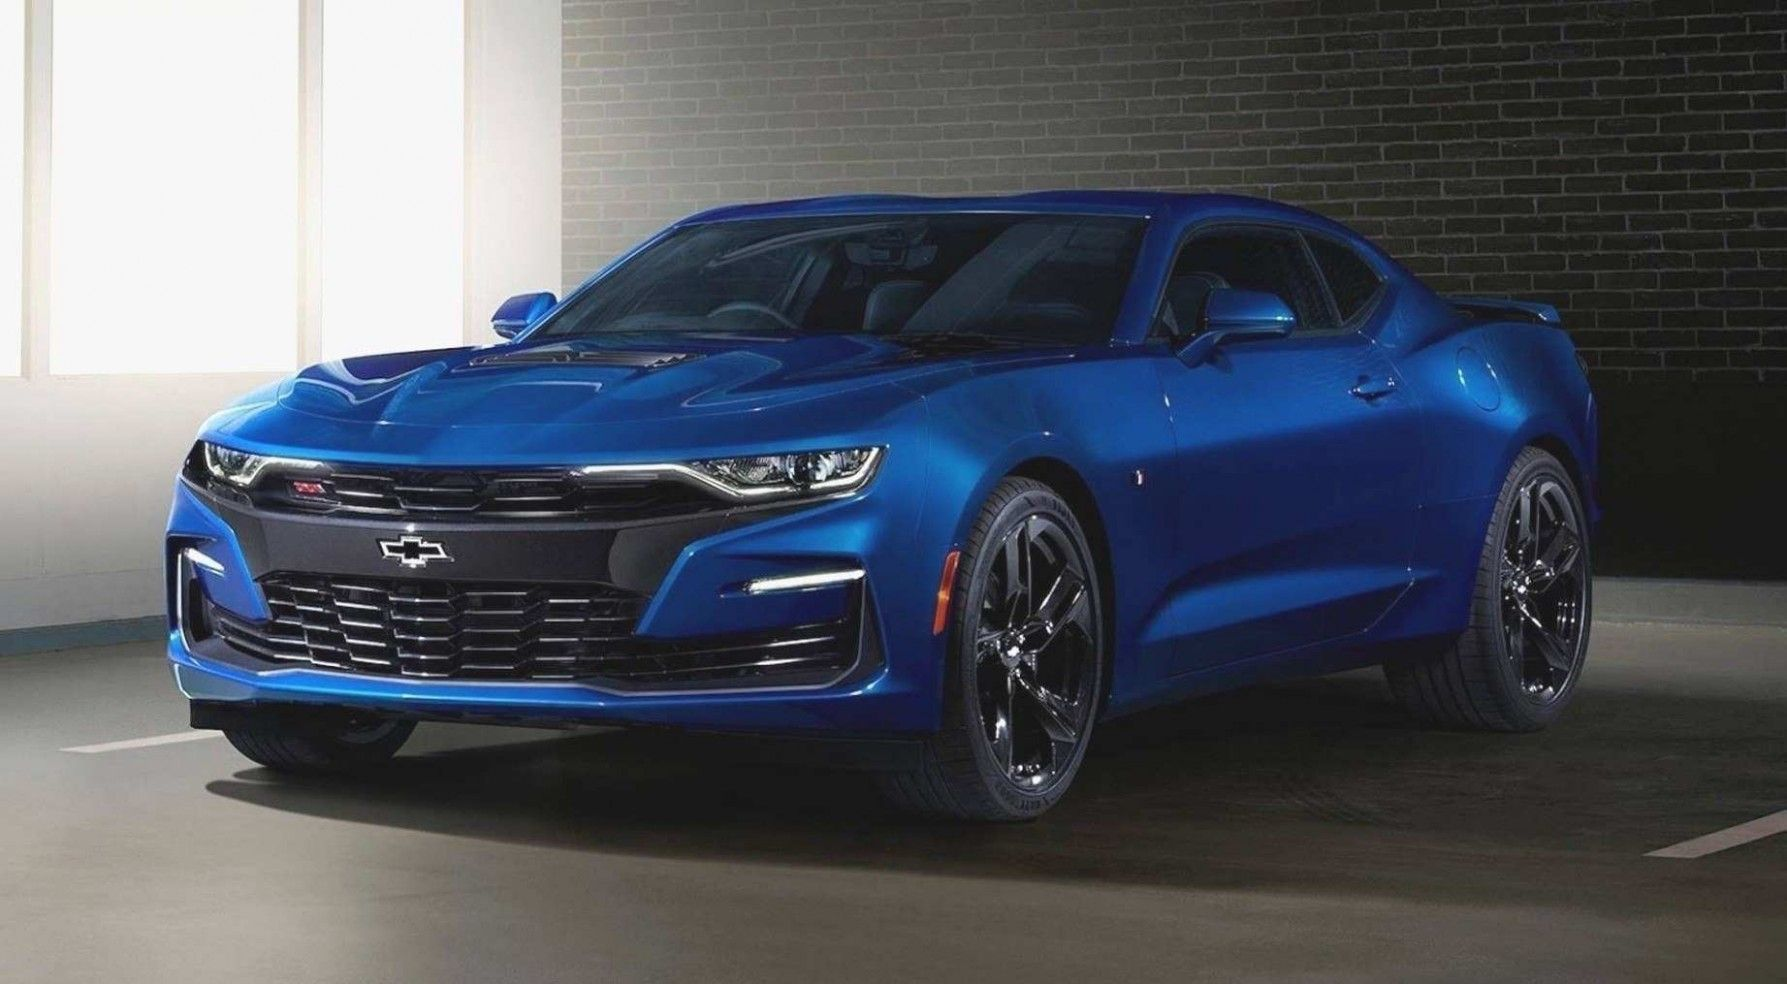 2020 Chevy Chevelle SS Release Date and Concept